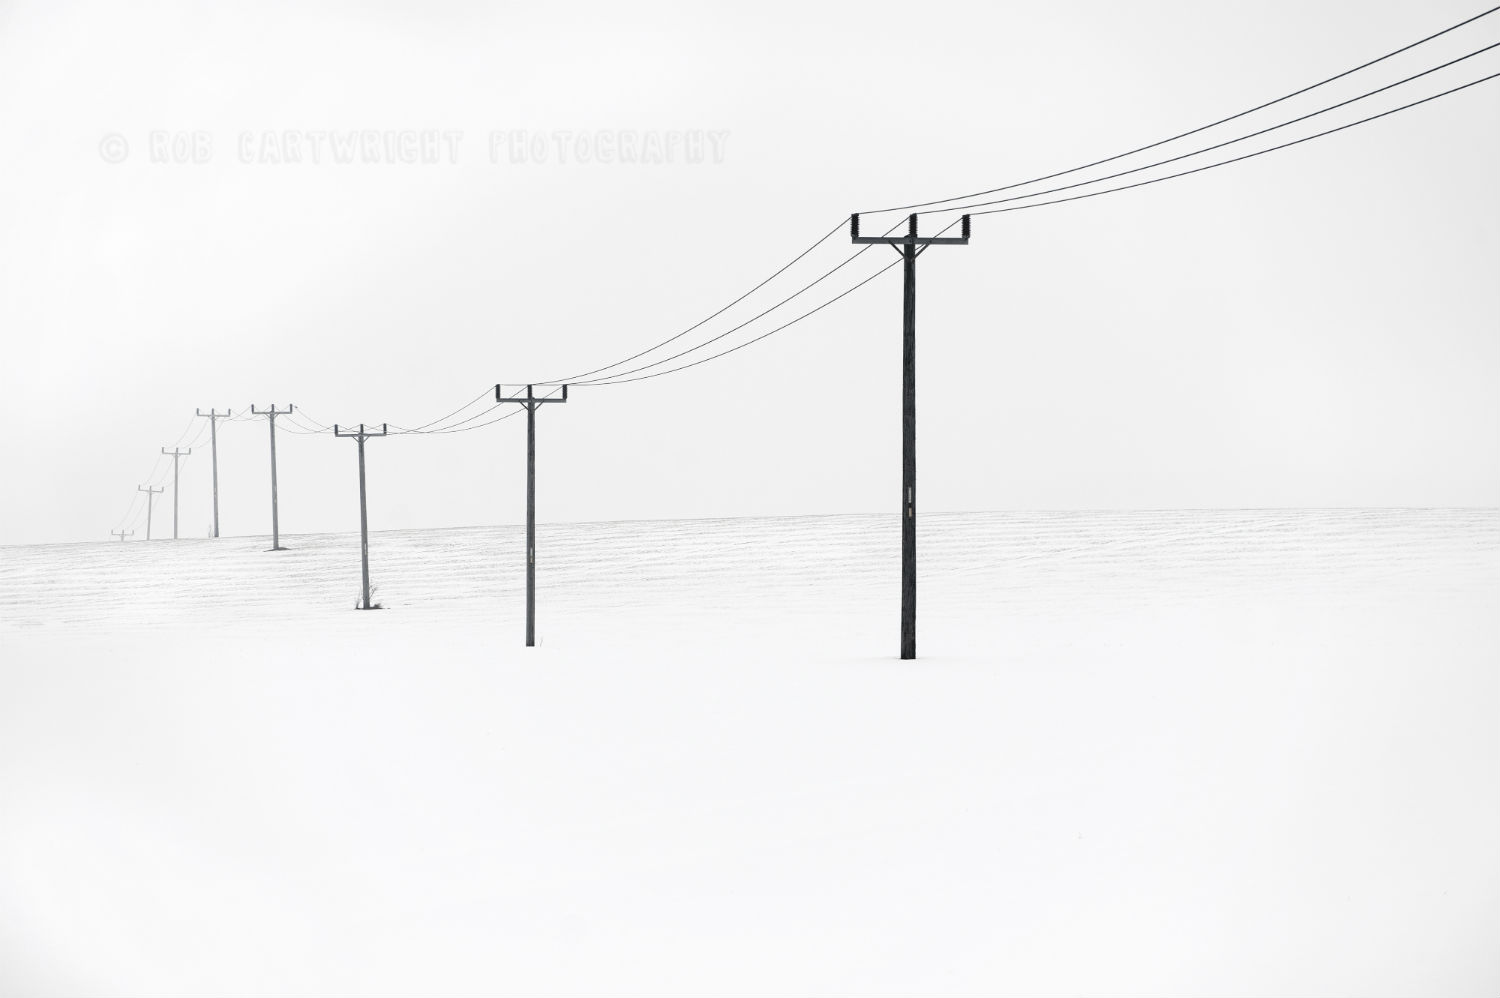 minimalist photography white snow poles